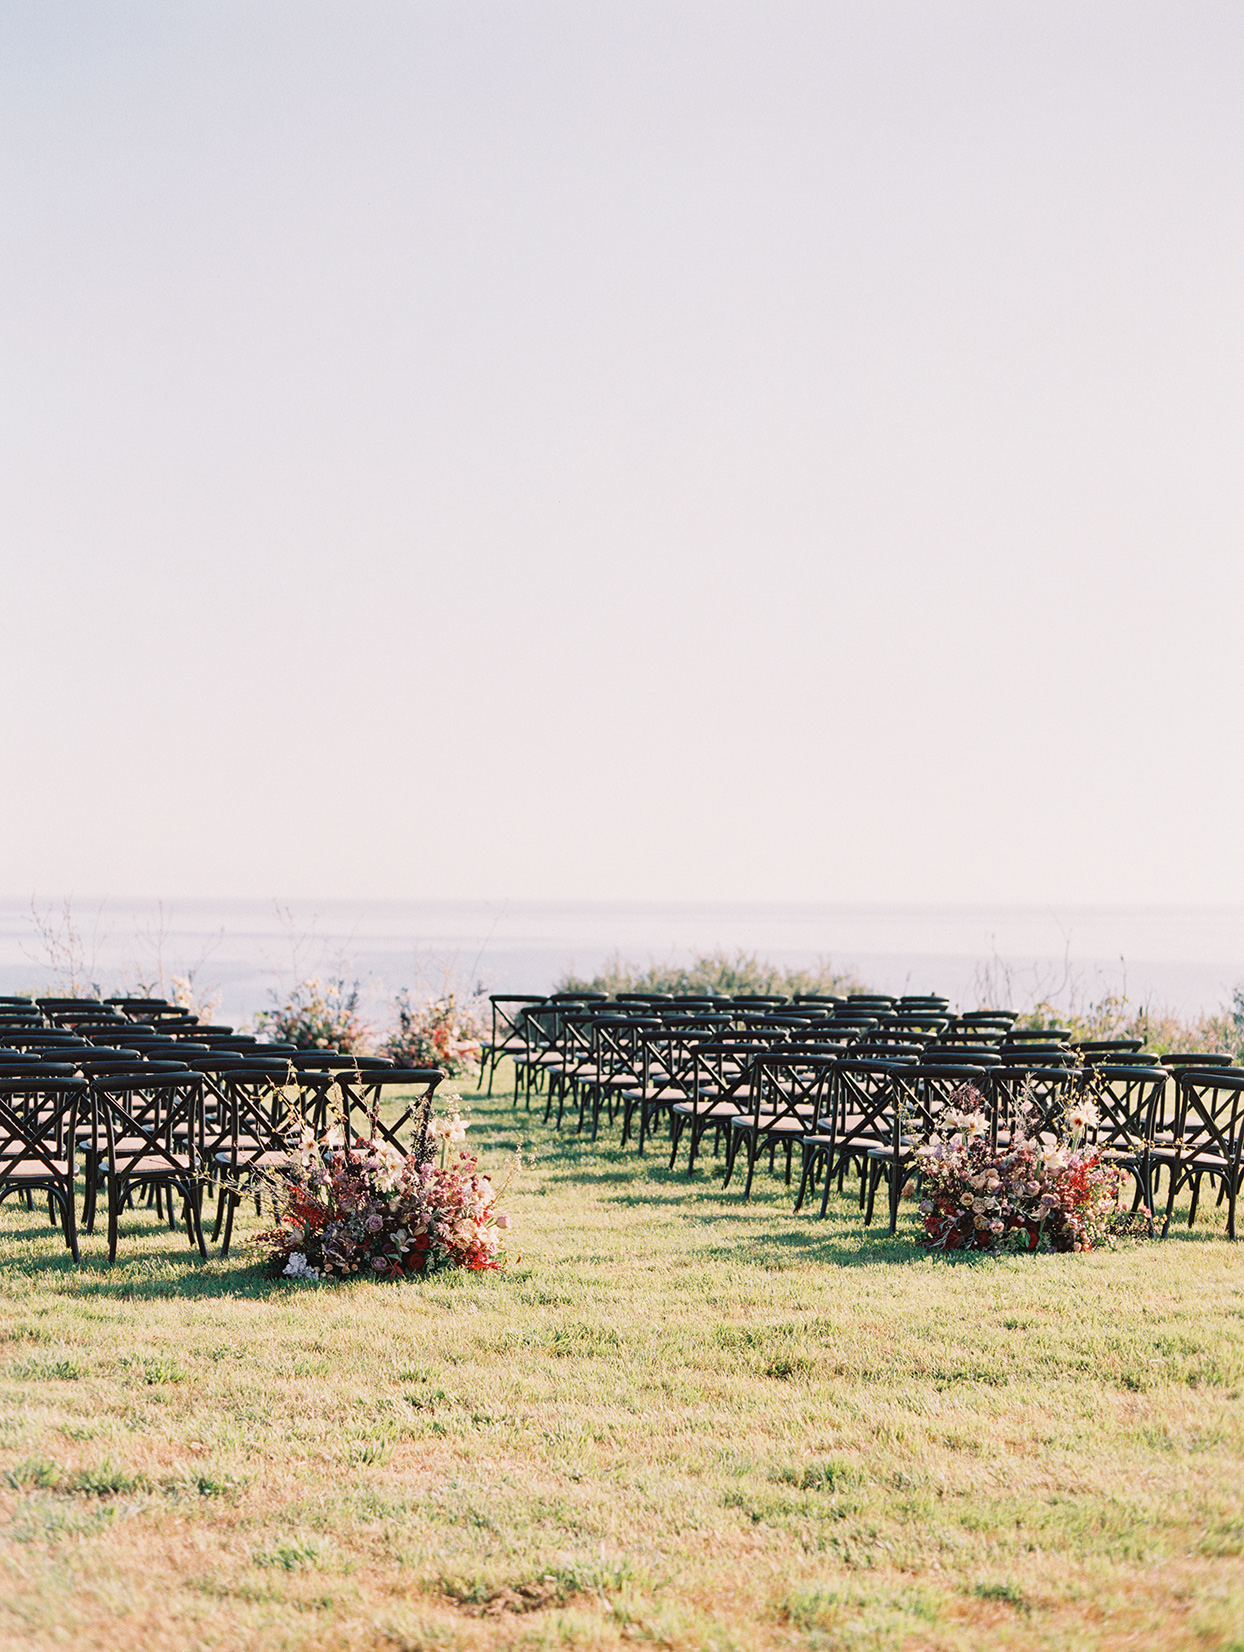 wedding ceremony space with black chairs set up on grass by ocean